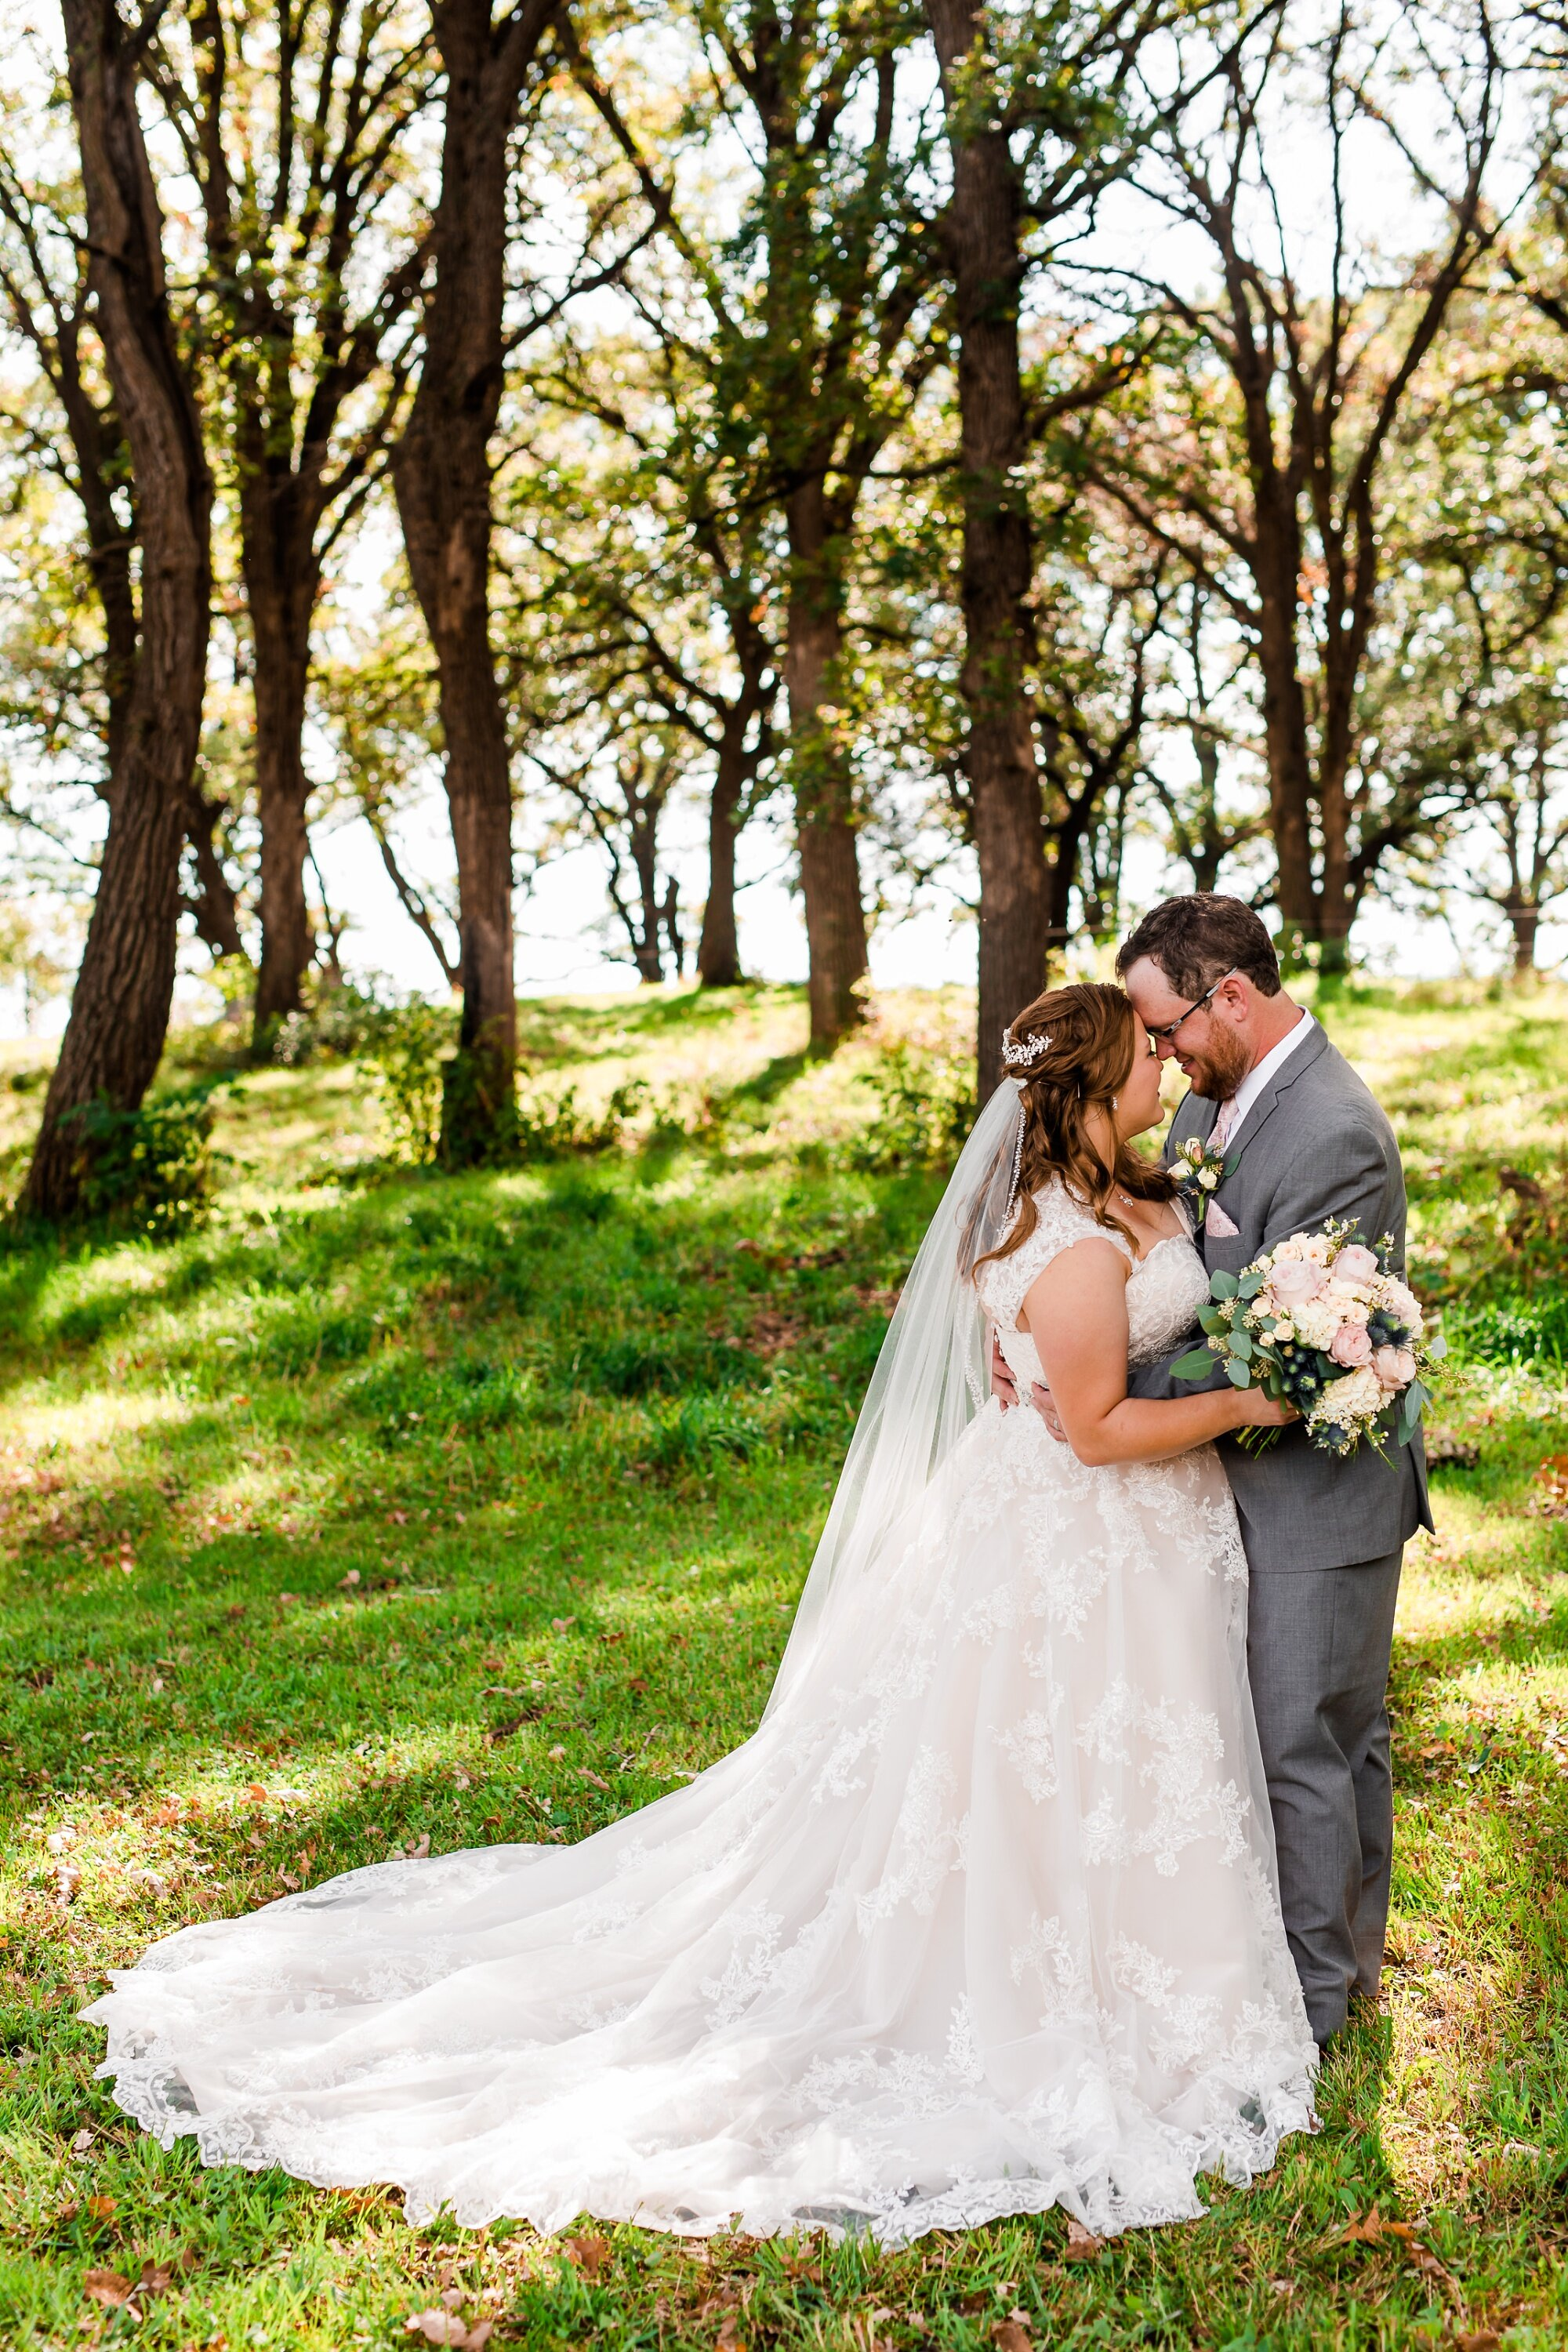 Amber Langerud Photography_Lake Park Minnesota, Outdoor Barn Wedding With Horses_6962.jpg